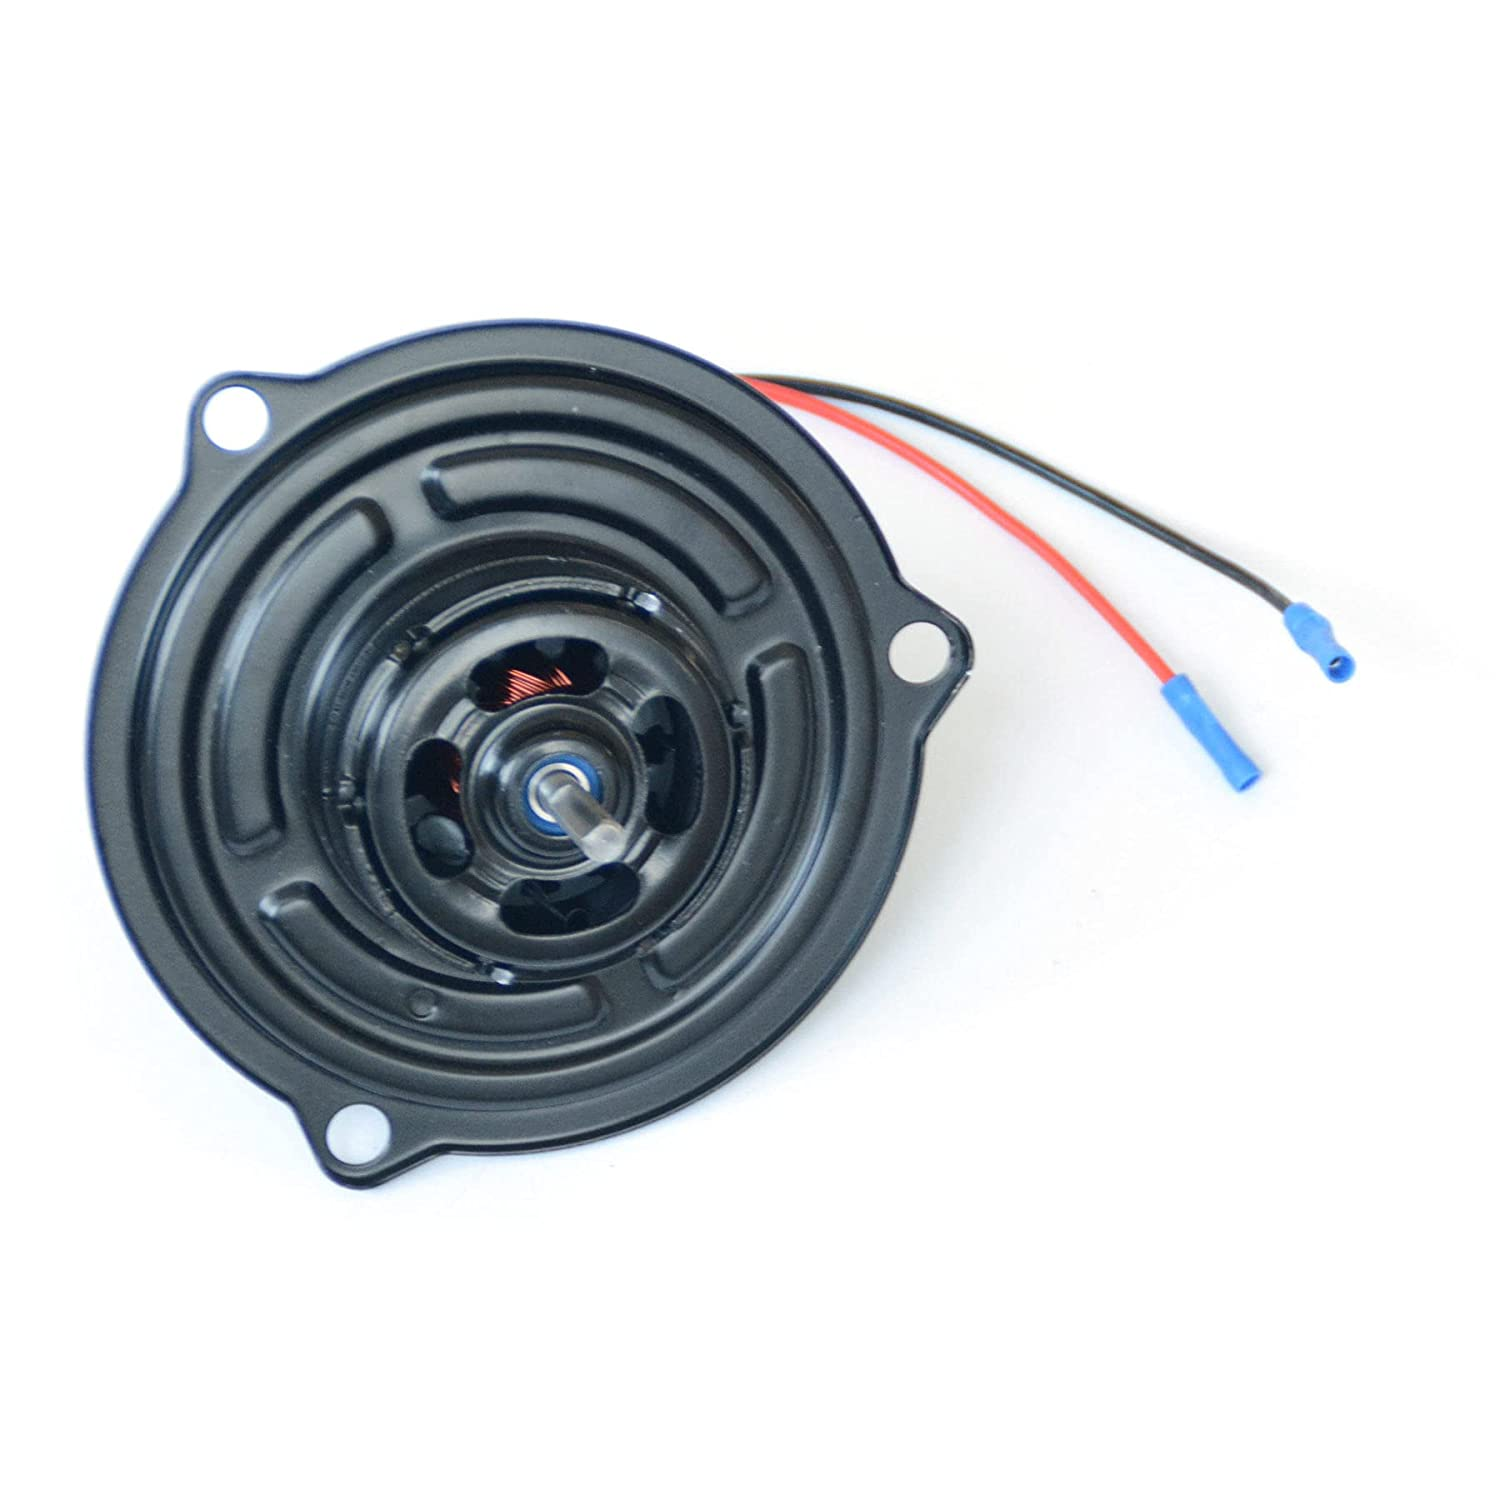 ALLPRO Fits Ram 1500 2500 3500 New Price reduction AC Motor G Heater Blower Max 49% OFF HVAC